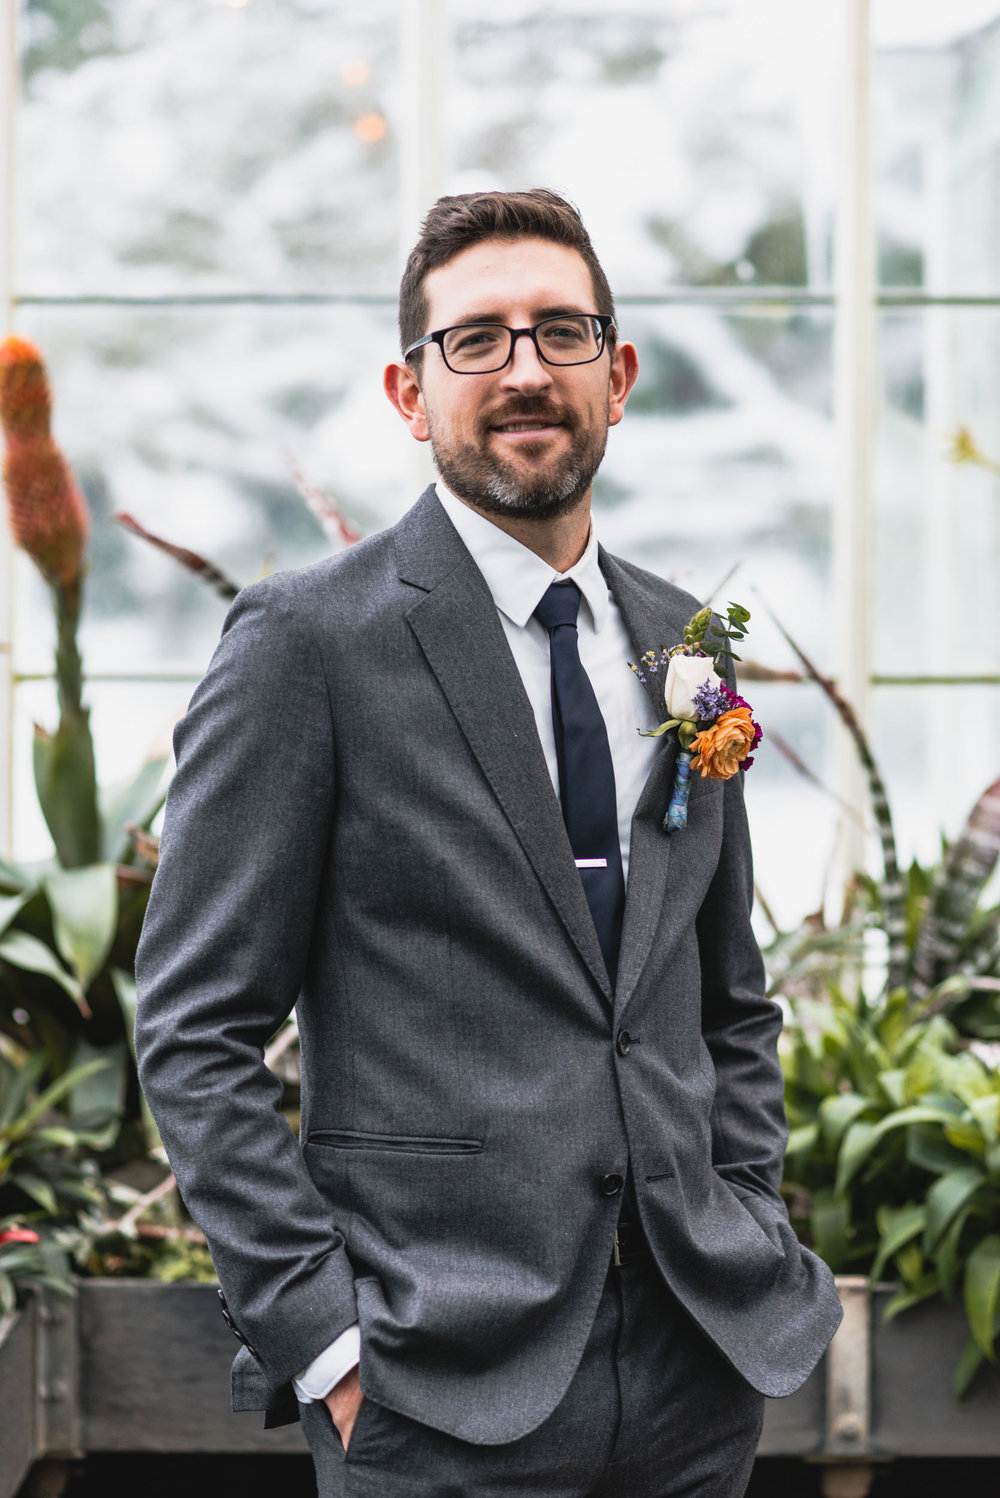 Groom portrait in conservatory